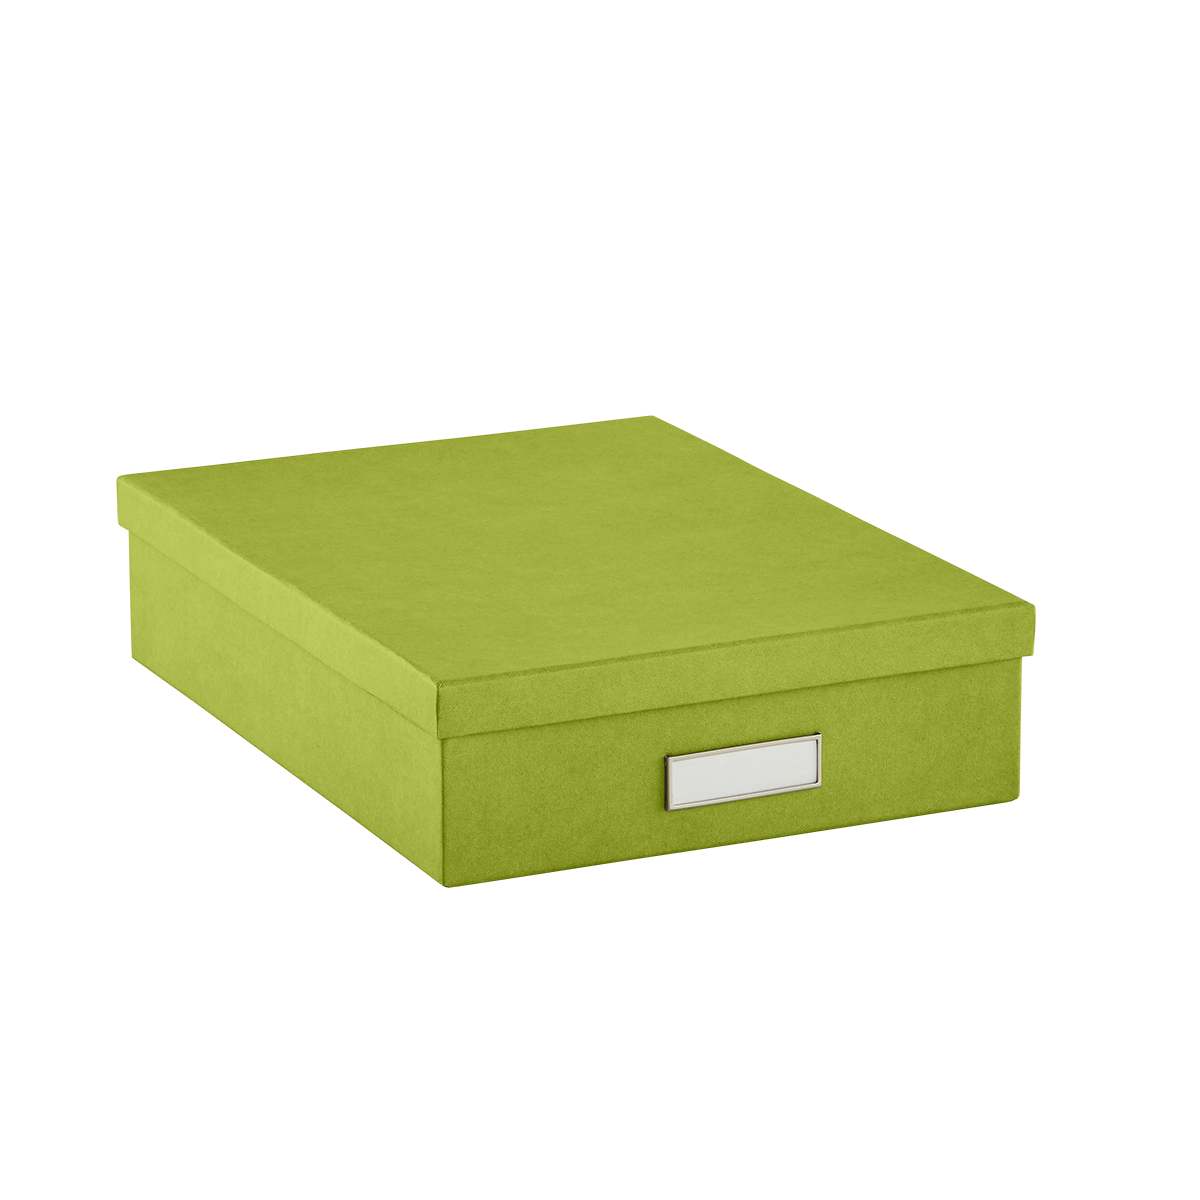 Decorative Storage Boxes - Office